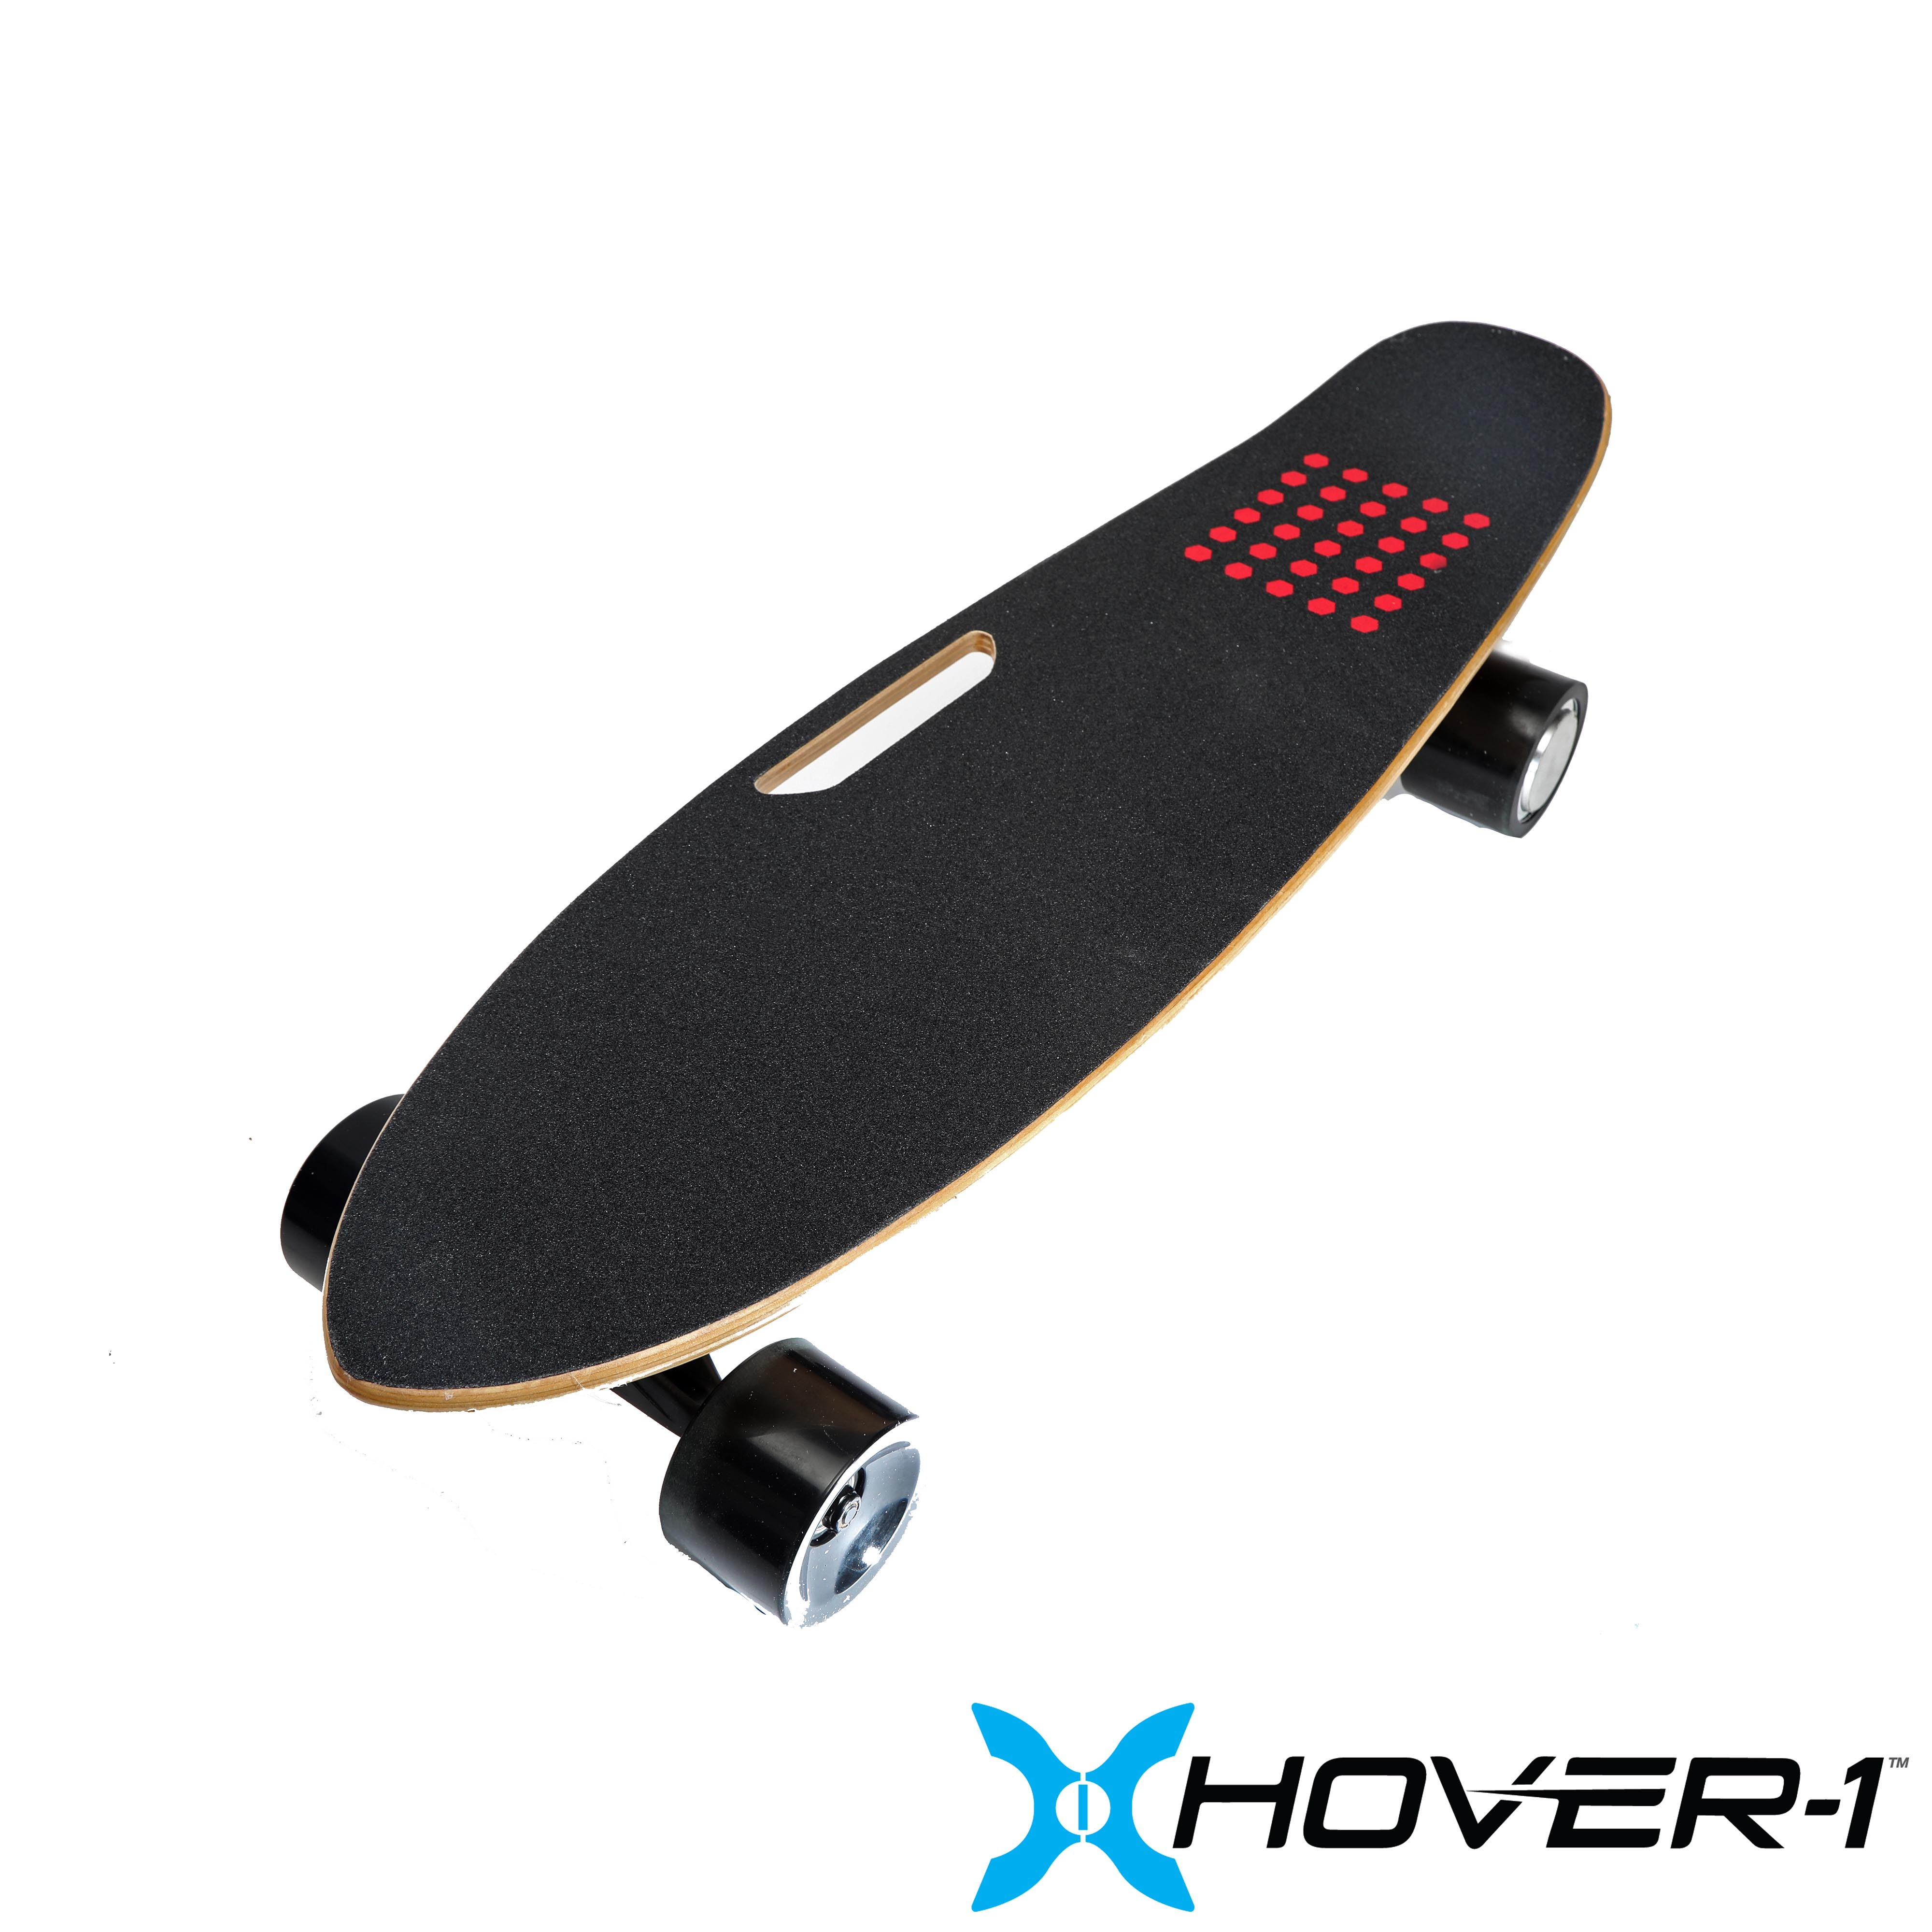 Hover1 Cruze Electric Self Powered Skateboard with Carrying Handle  Walmart.com